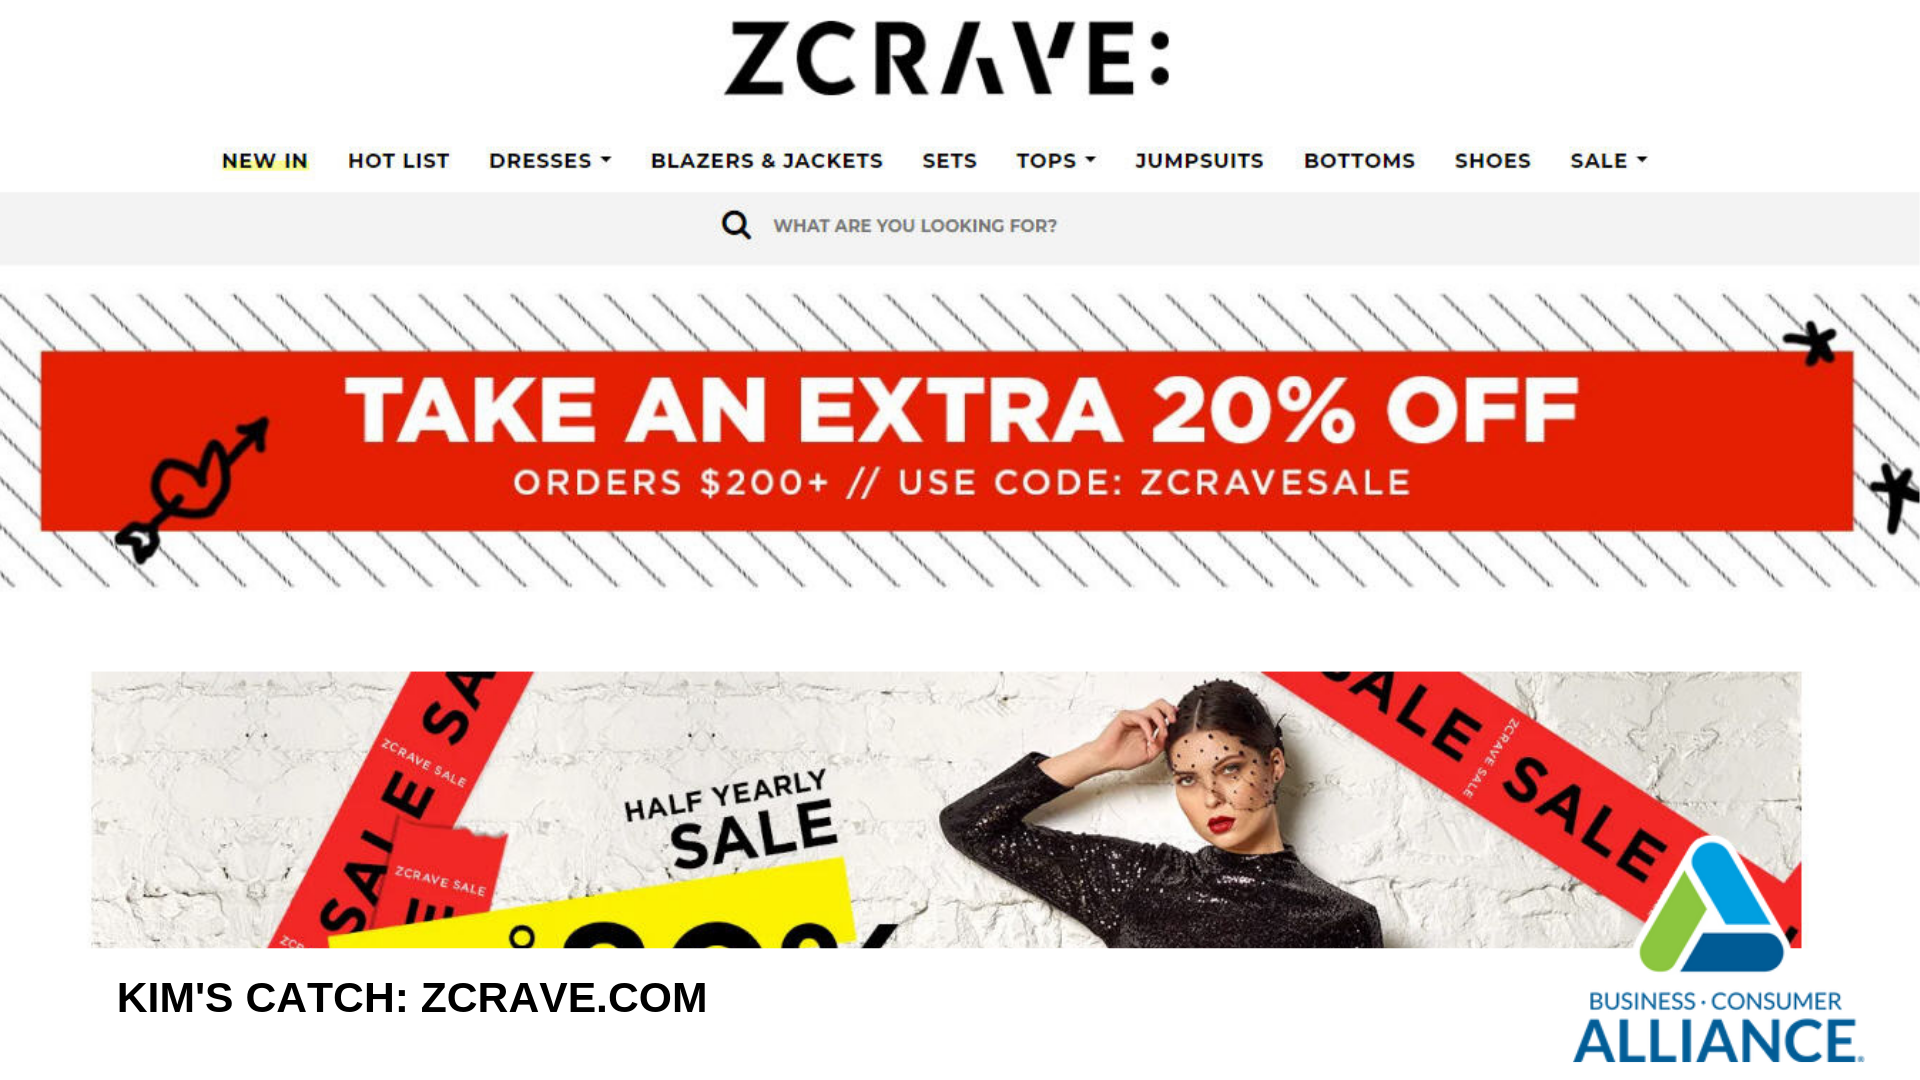 zcrave website